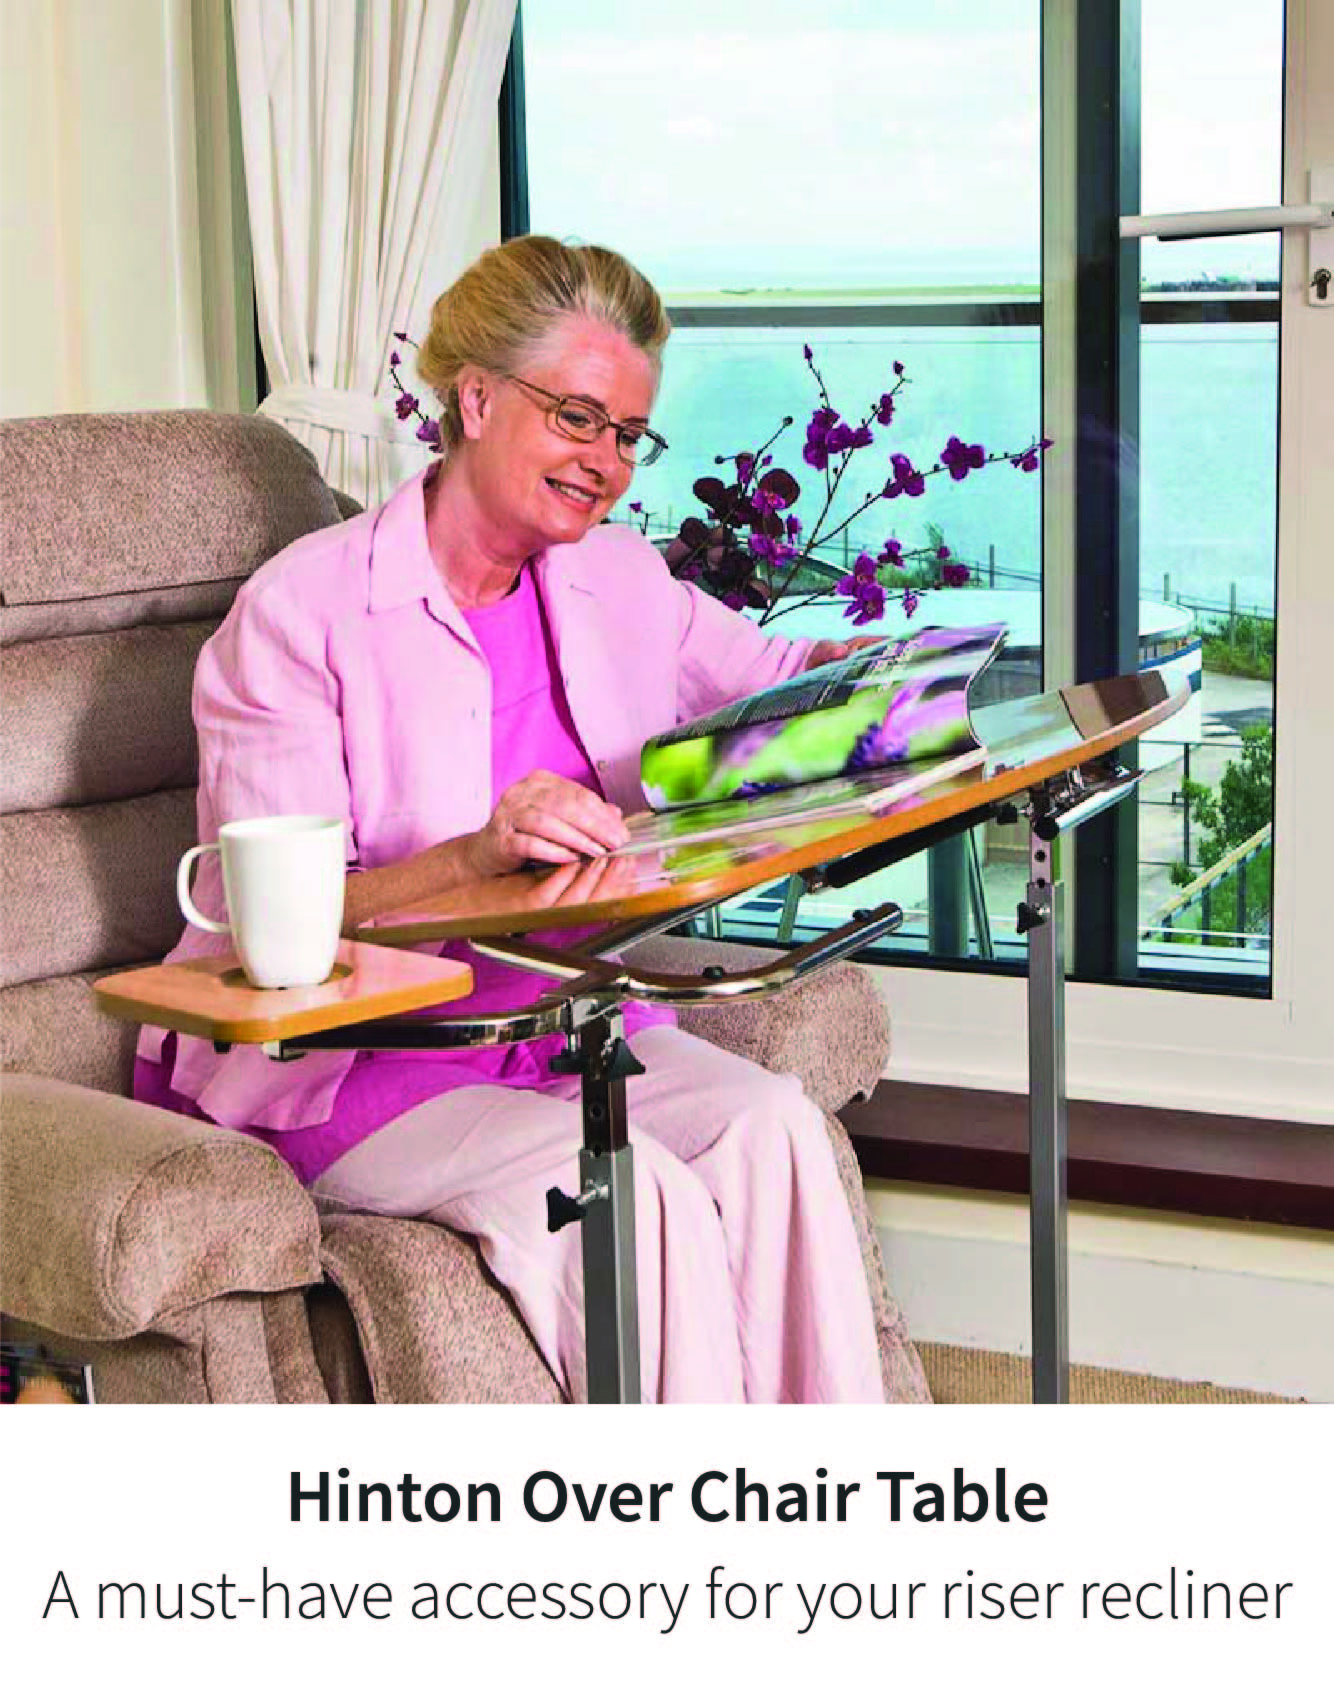 The Hinton Over Chair Table